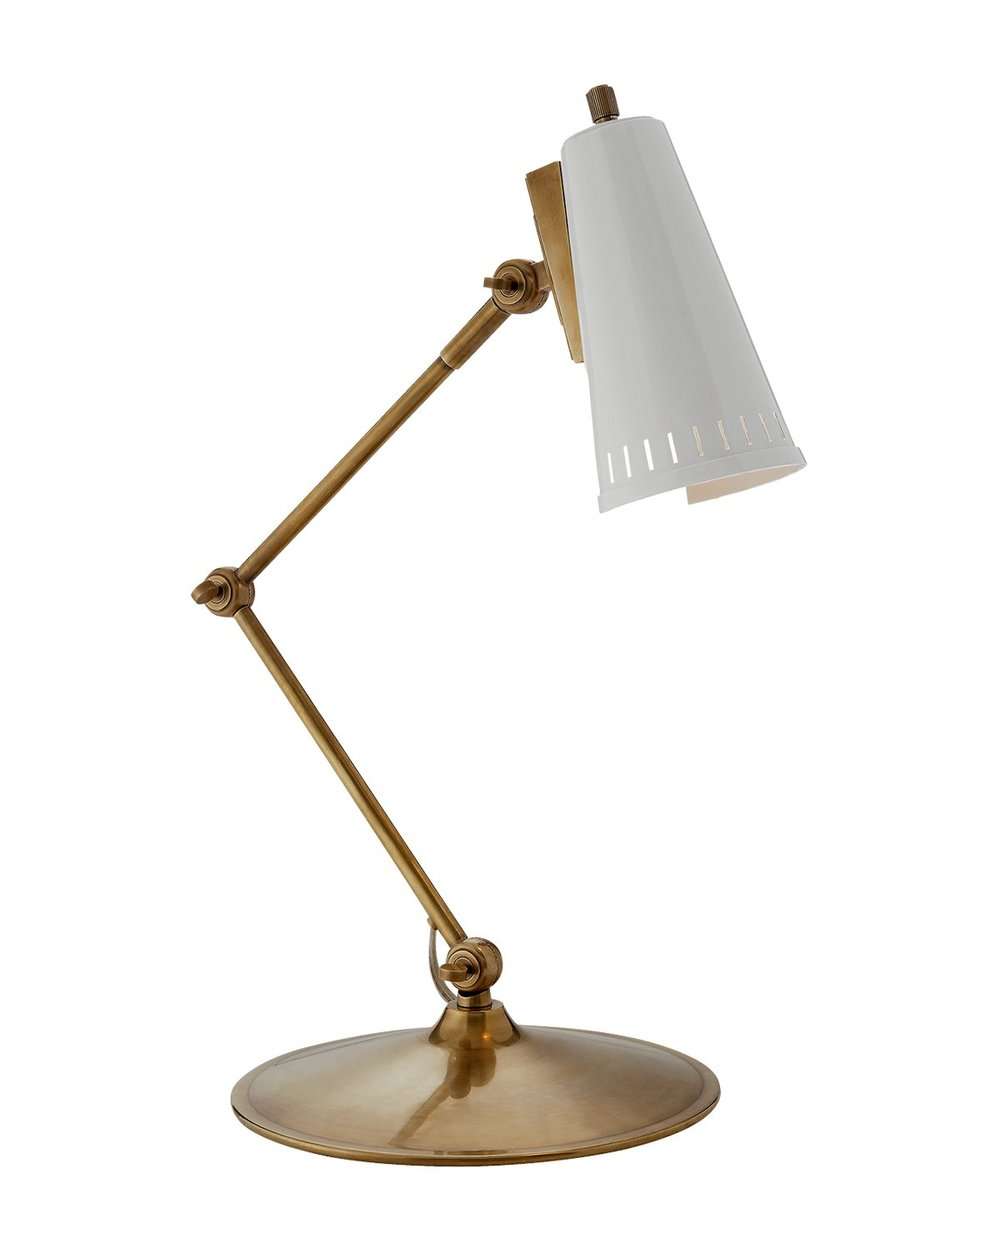 Antonio_Articulating_Task_Lamp_2.jpg